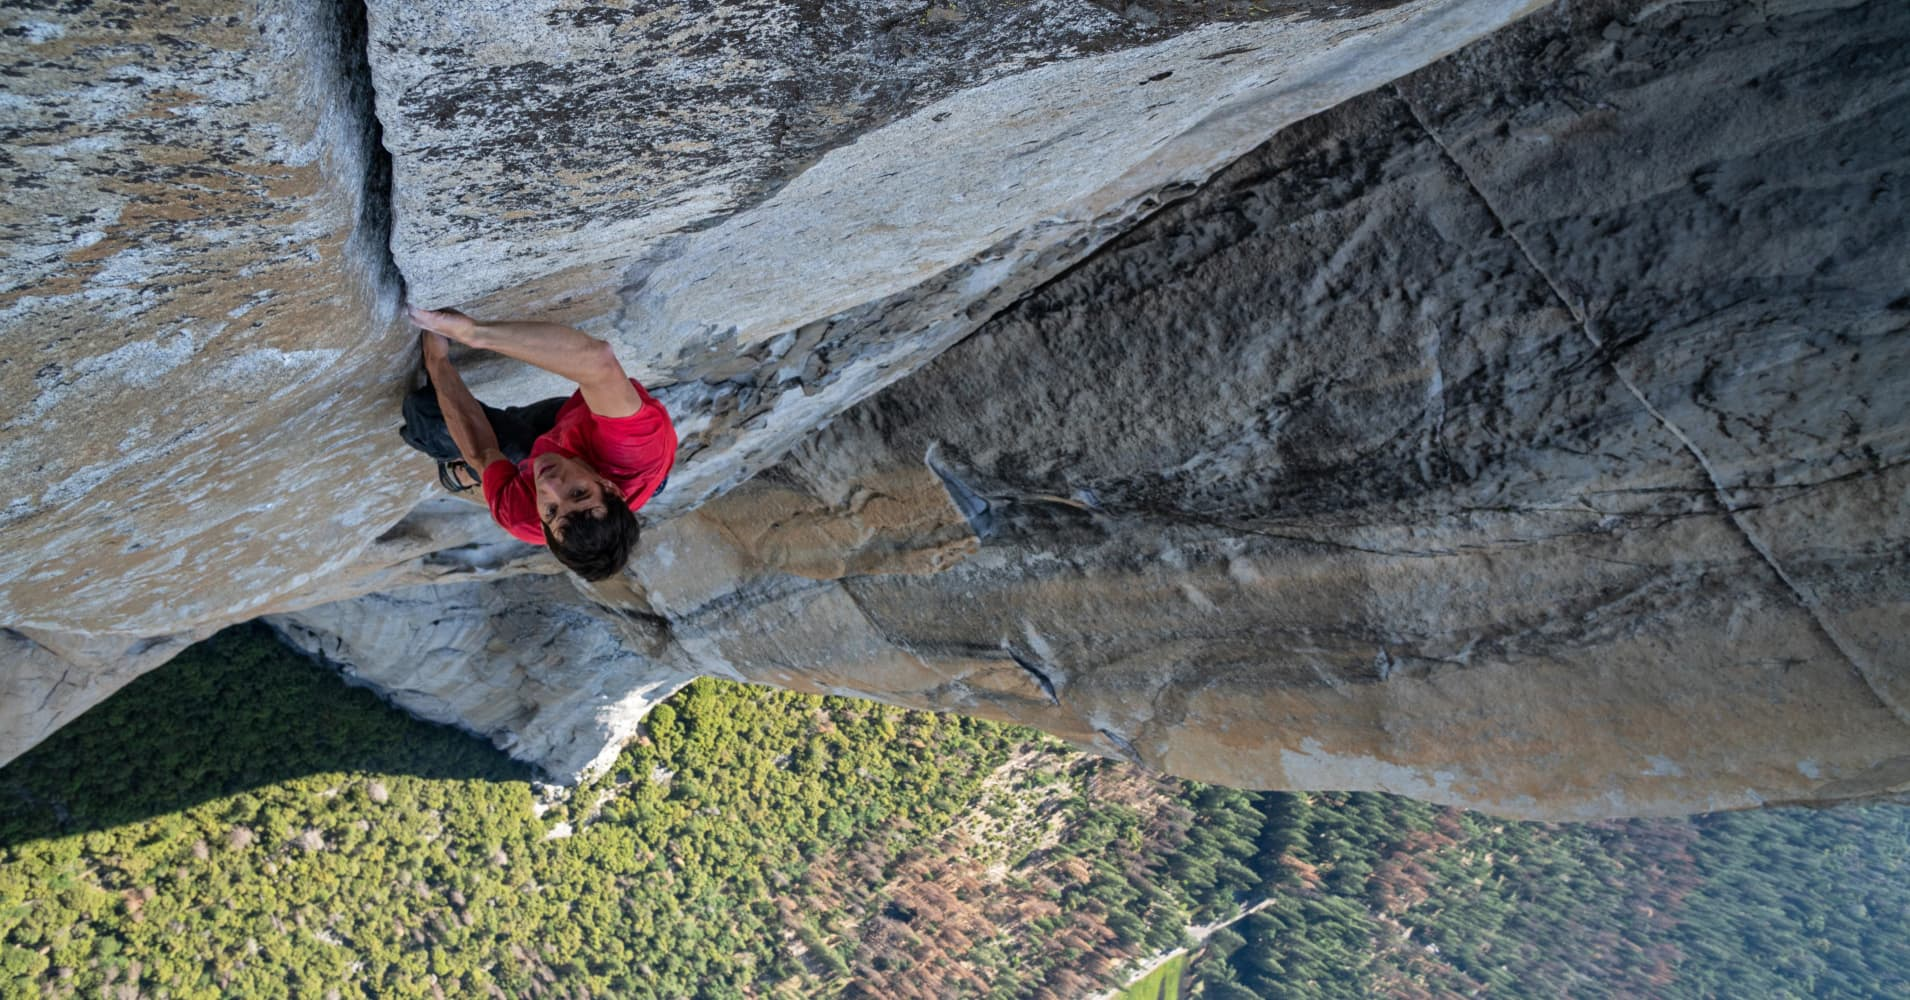 Oscar-winner 'Free Solo' offers an important lesson for overcoming your fears